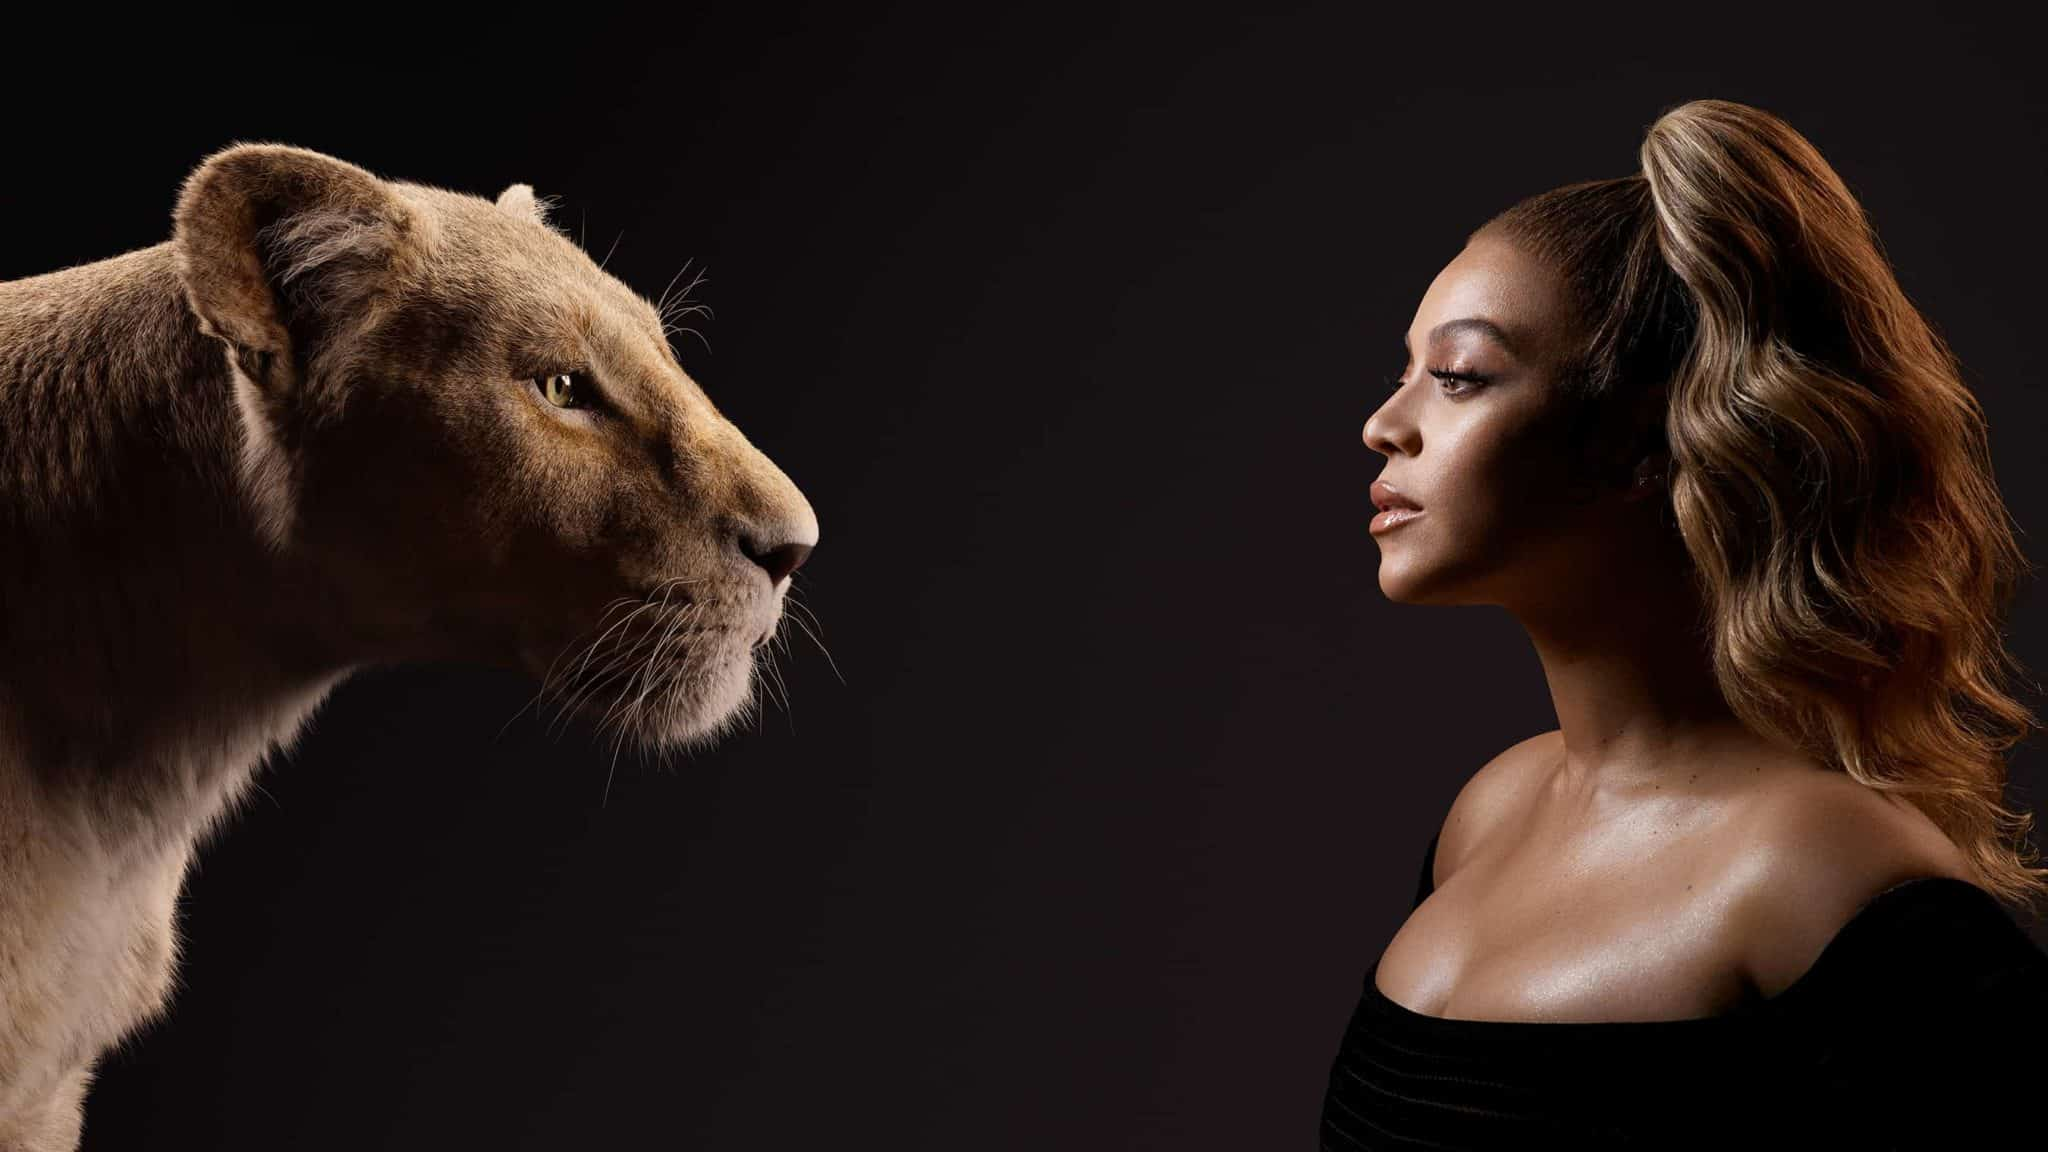 Disney Releases New Images Of Beyoncé Donald Glover And